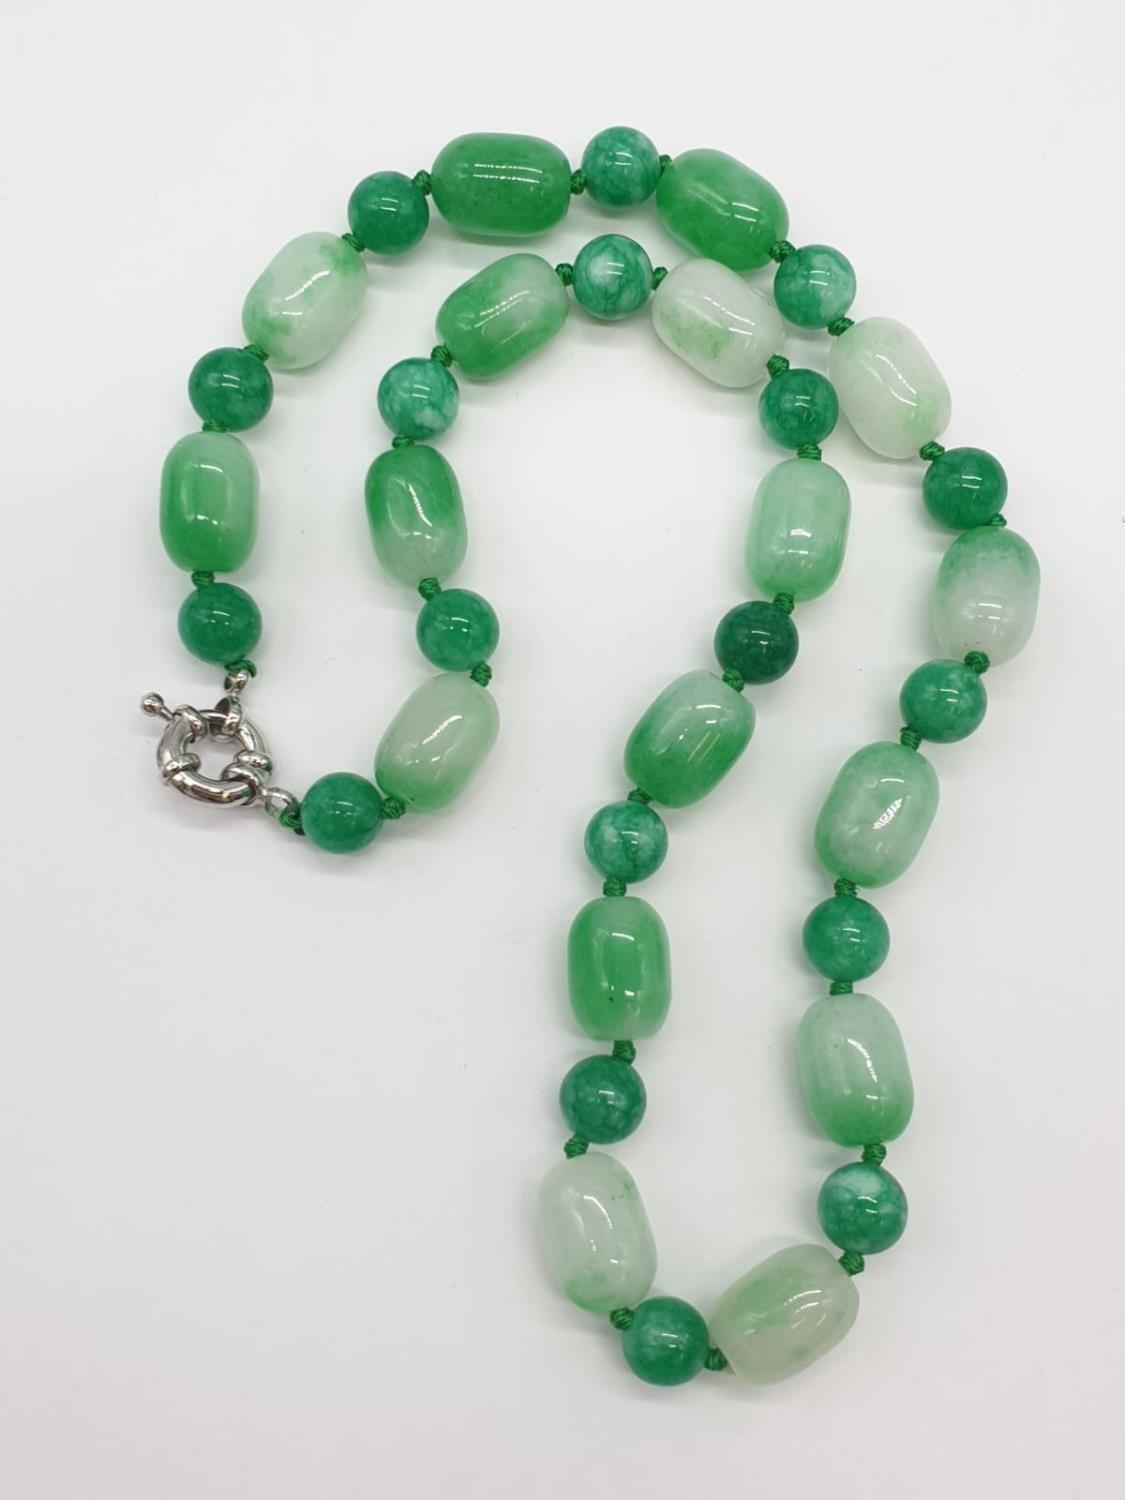 Jade necklace, weight 54g and 42cm long approx - Image 2 of 4